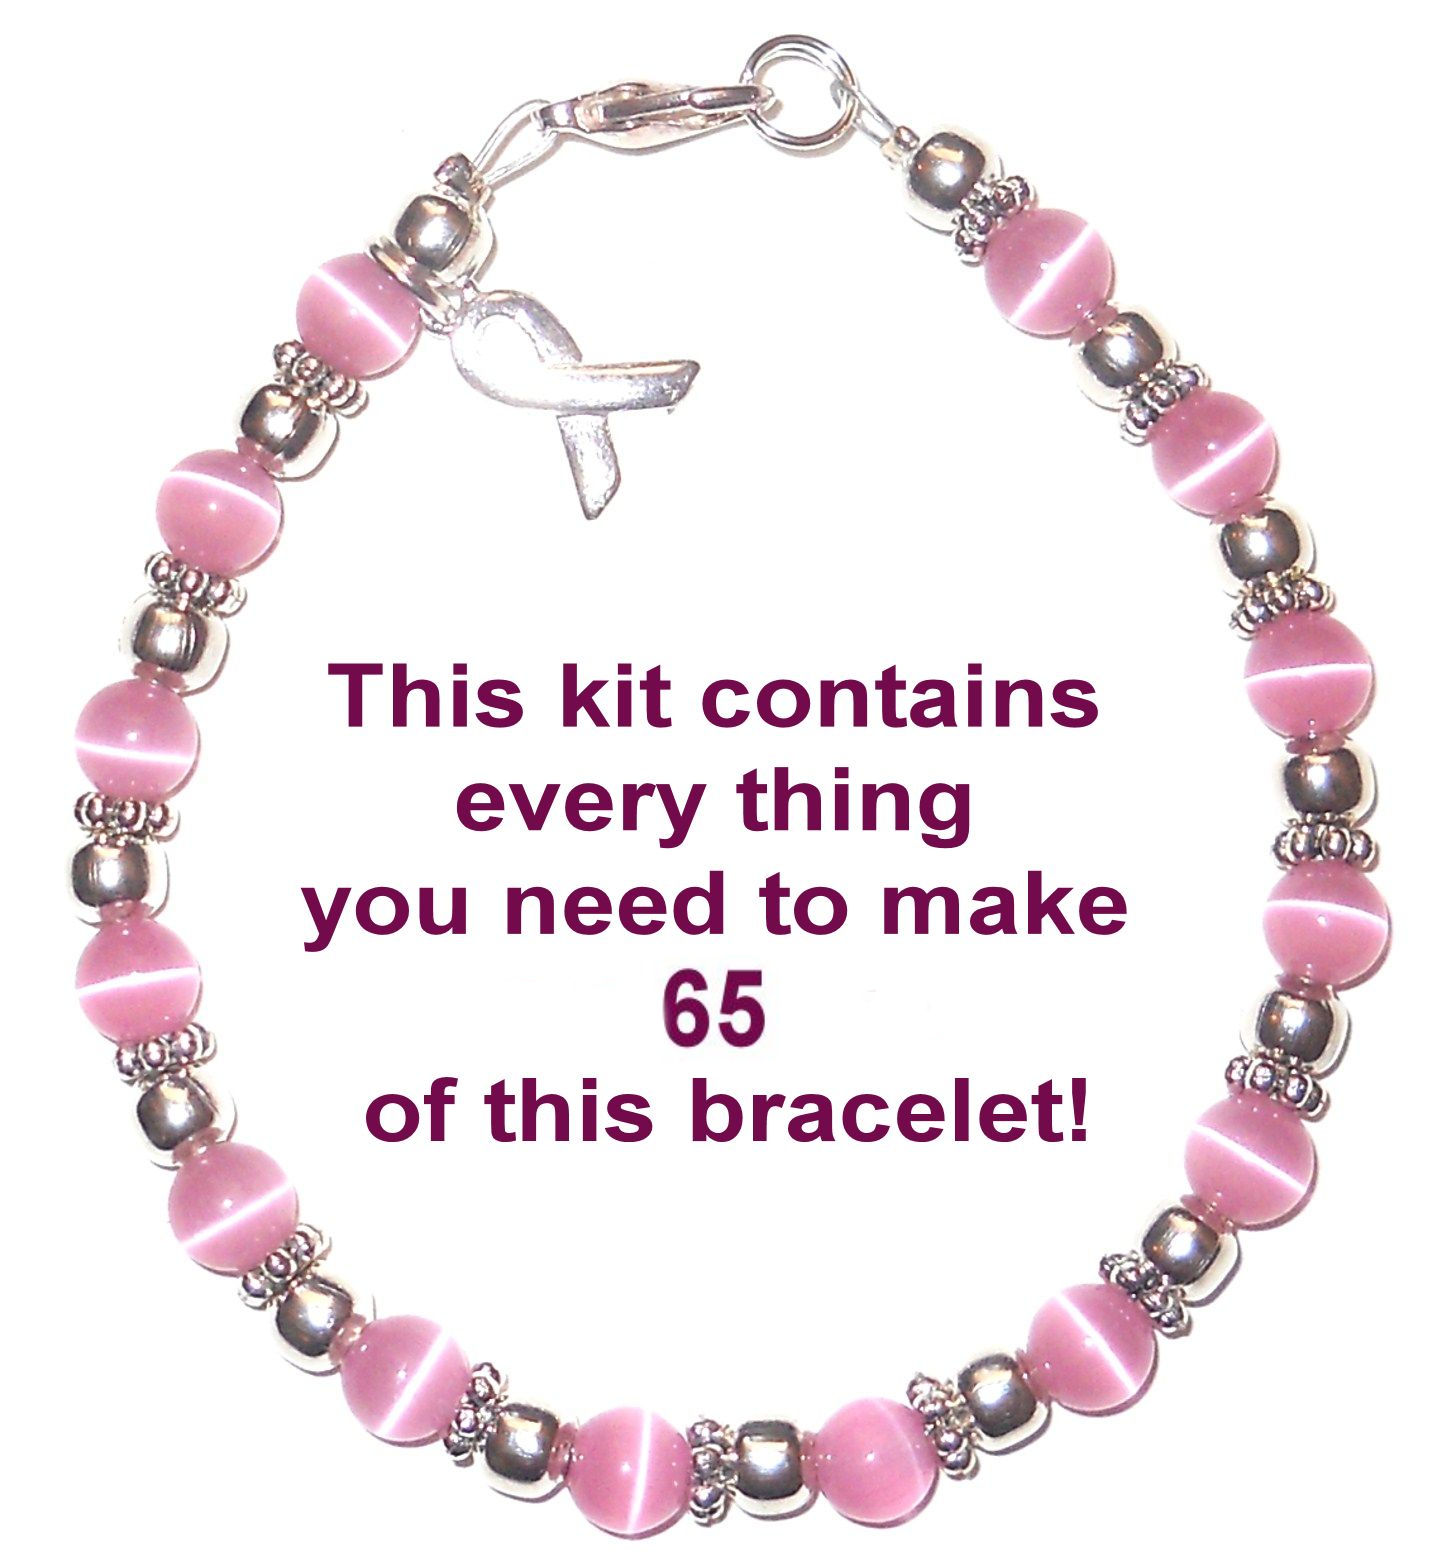 T Cancer Awareness Bracelet Kit With Clasps Wire 6mm Makes 65